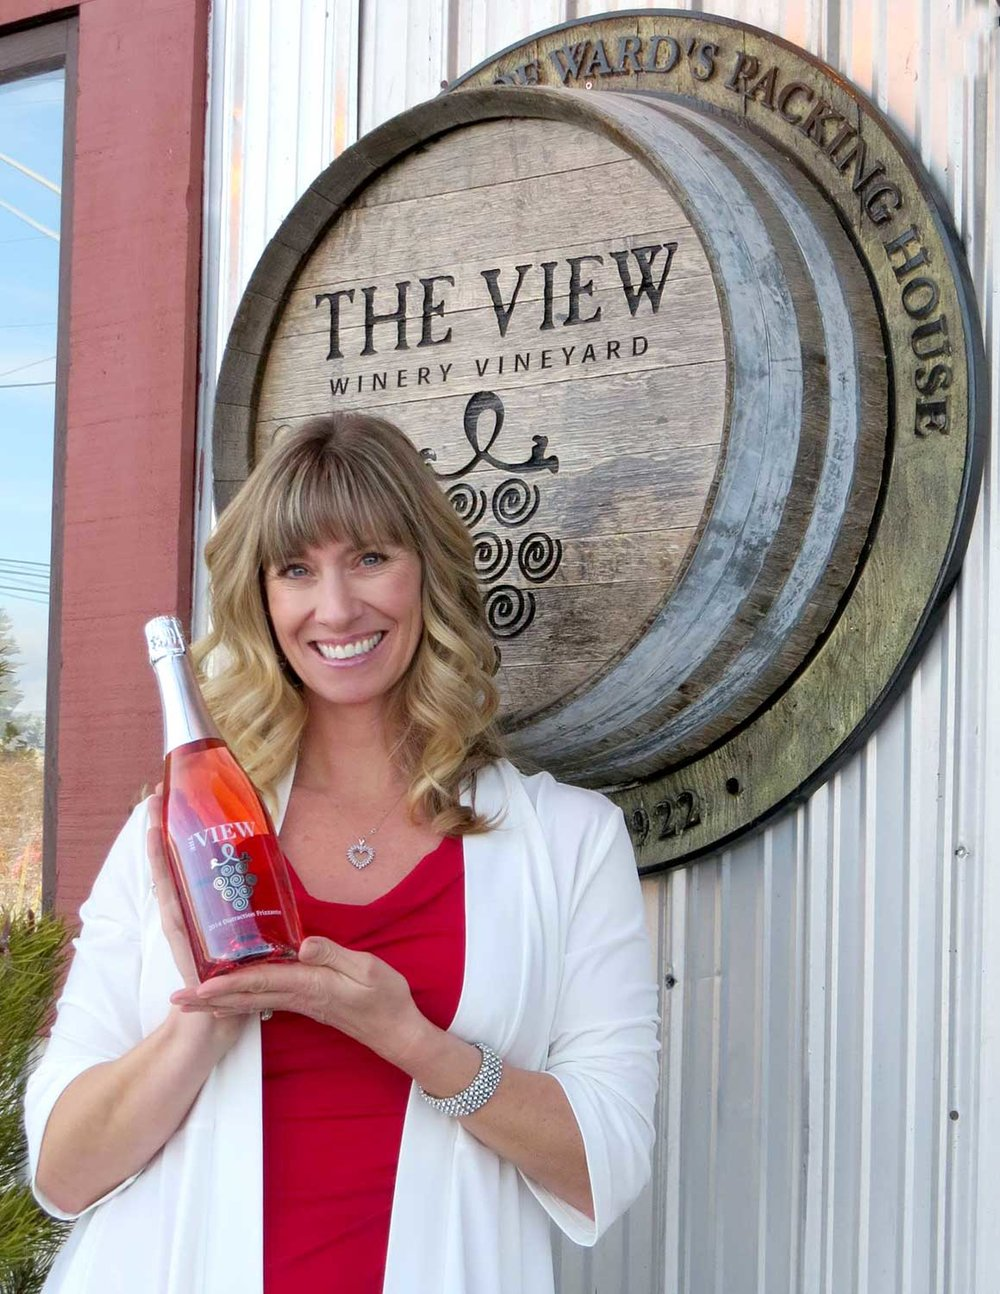 Since 2006 Jennifer Turton-Molgat has proudly led The View Winery to success in her role as President.